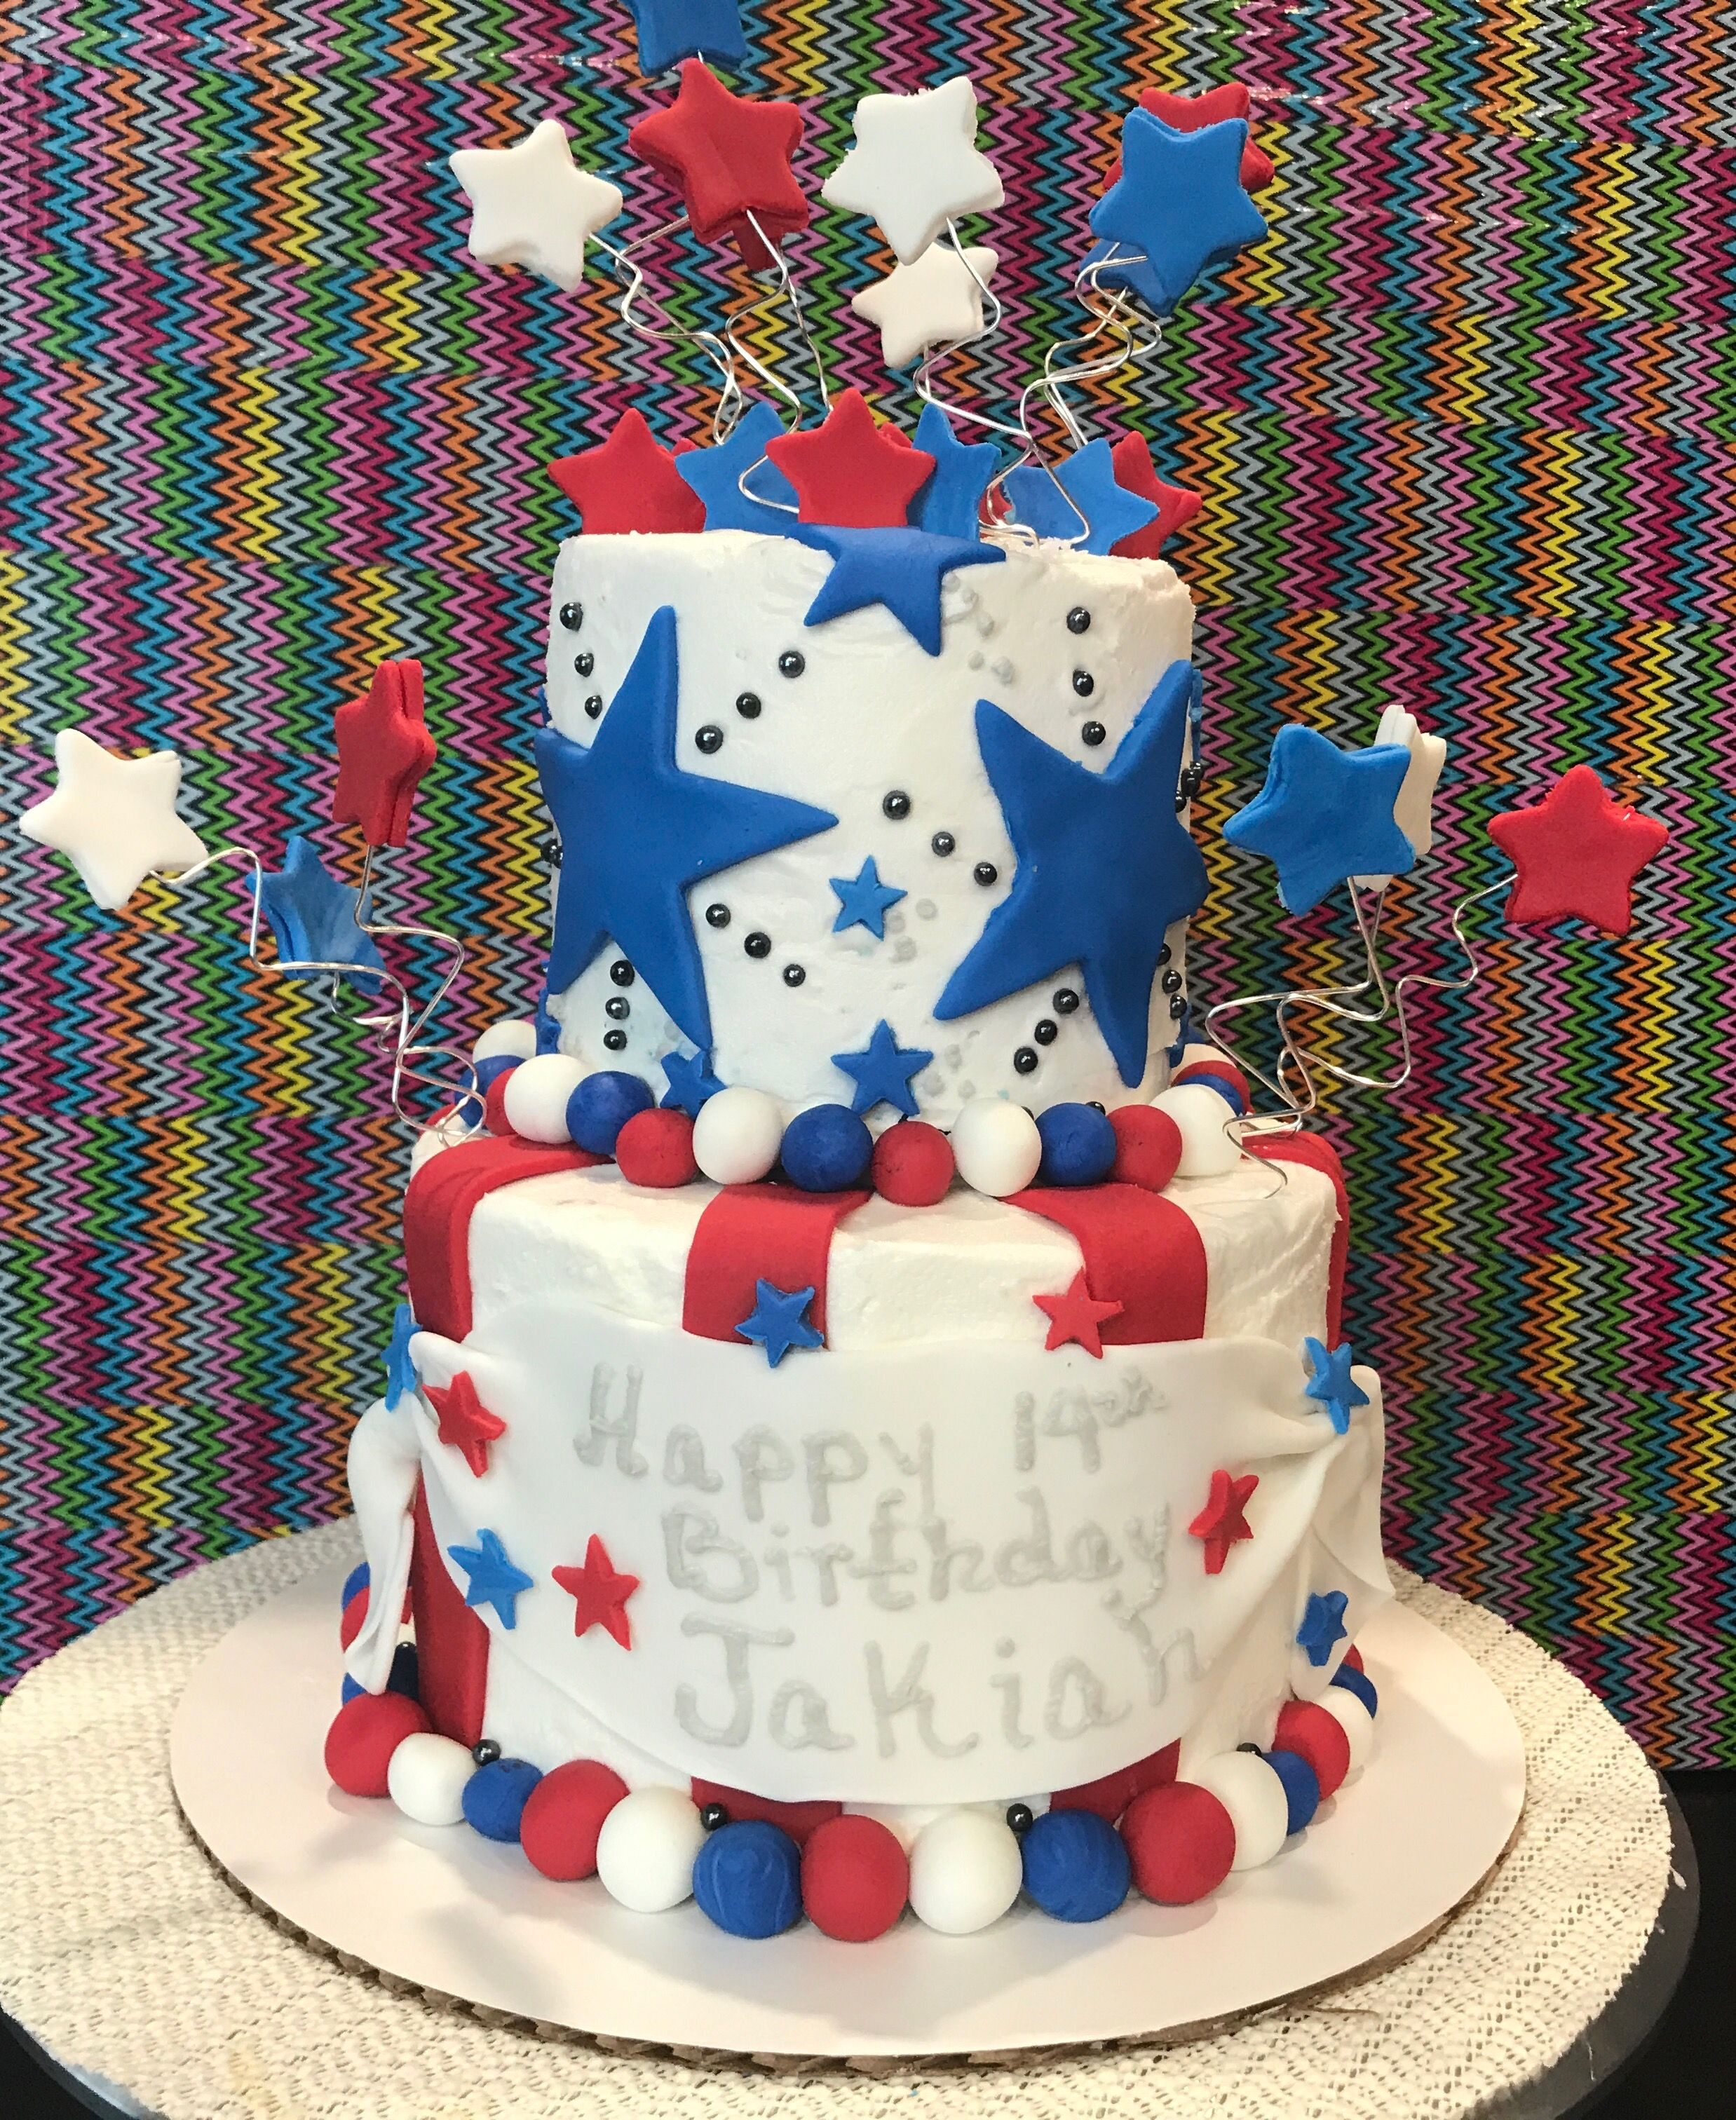 4th Of July Birthday 742017 Cakescupcakes And More That Ive